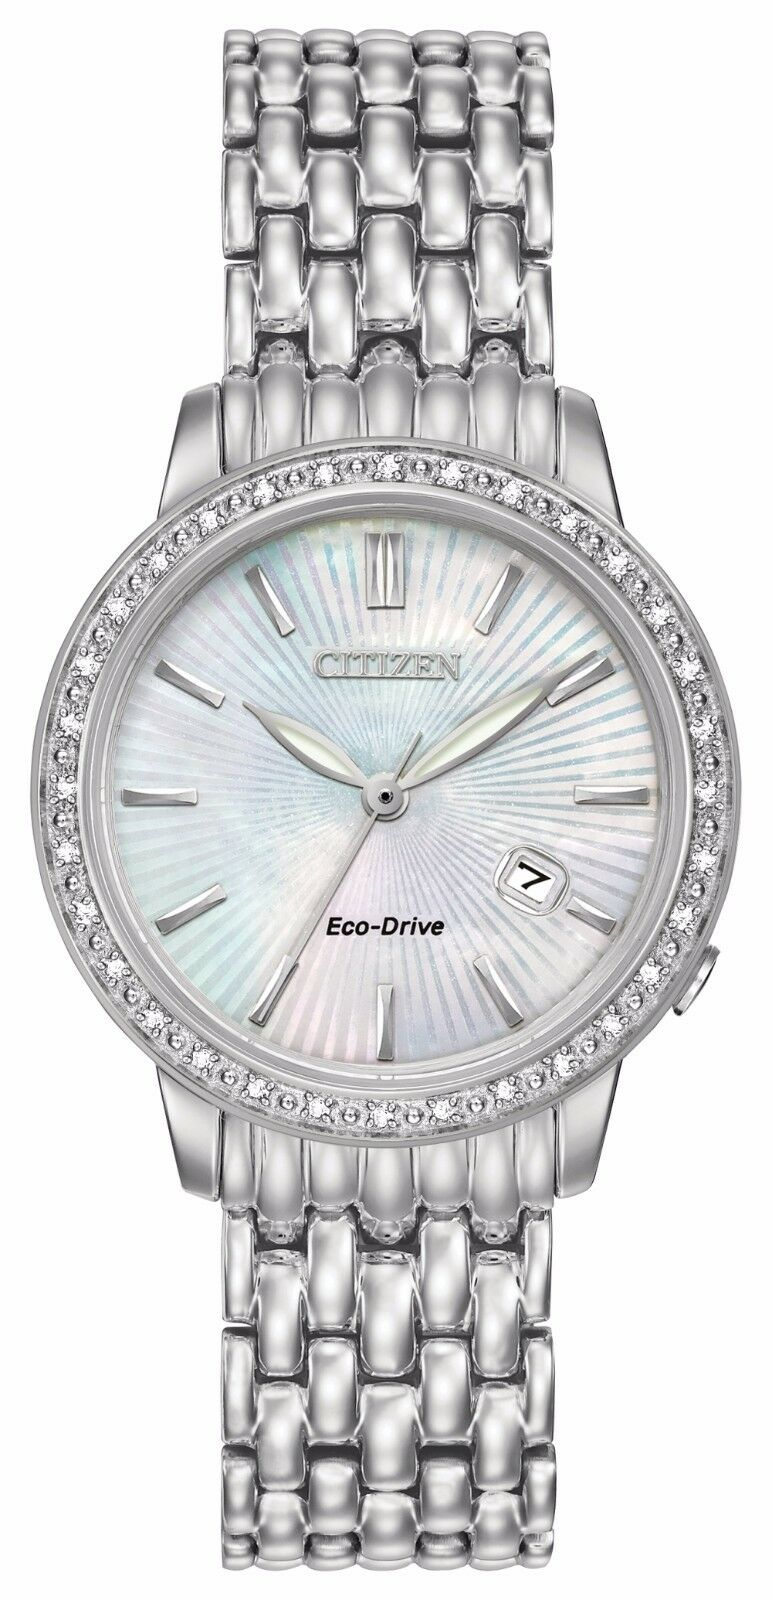 Citizen eco drive women 39 s ew2280 58d diamond bezel mother of pearl dial watch for Pearl watches